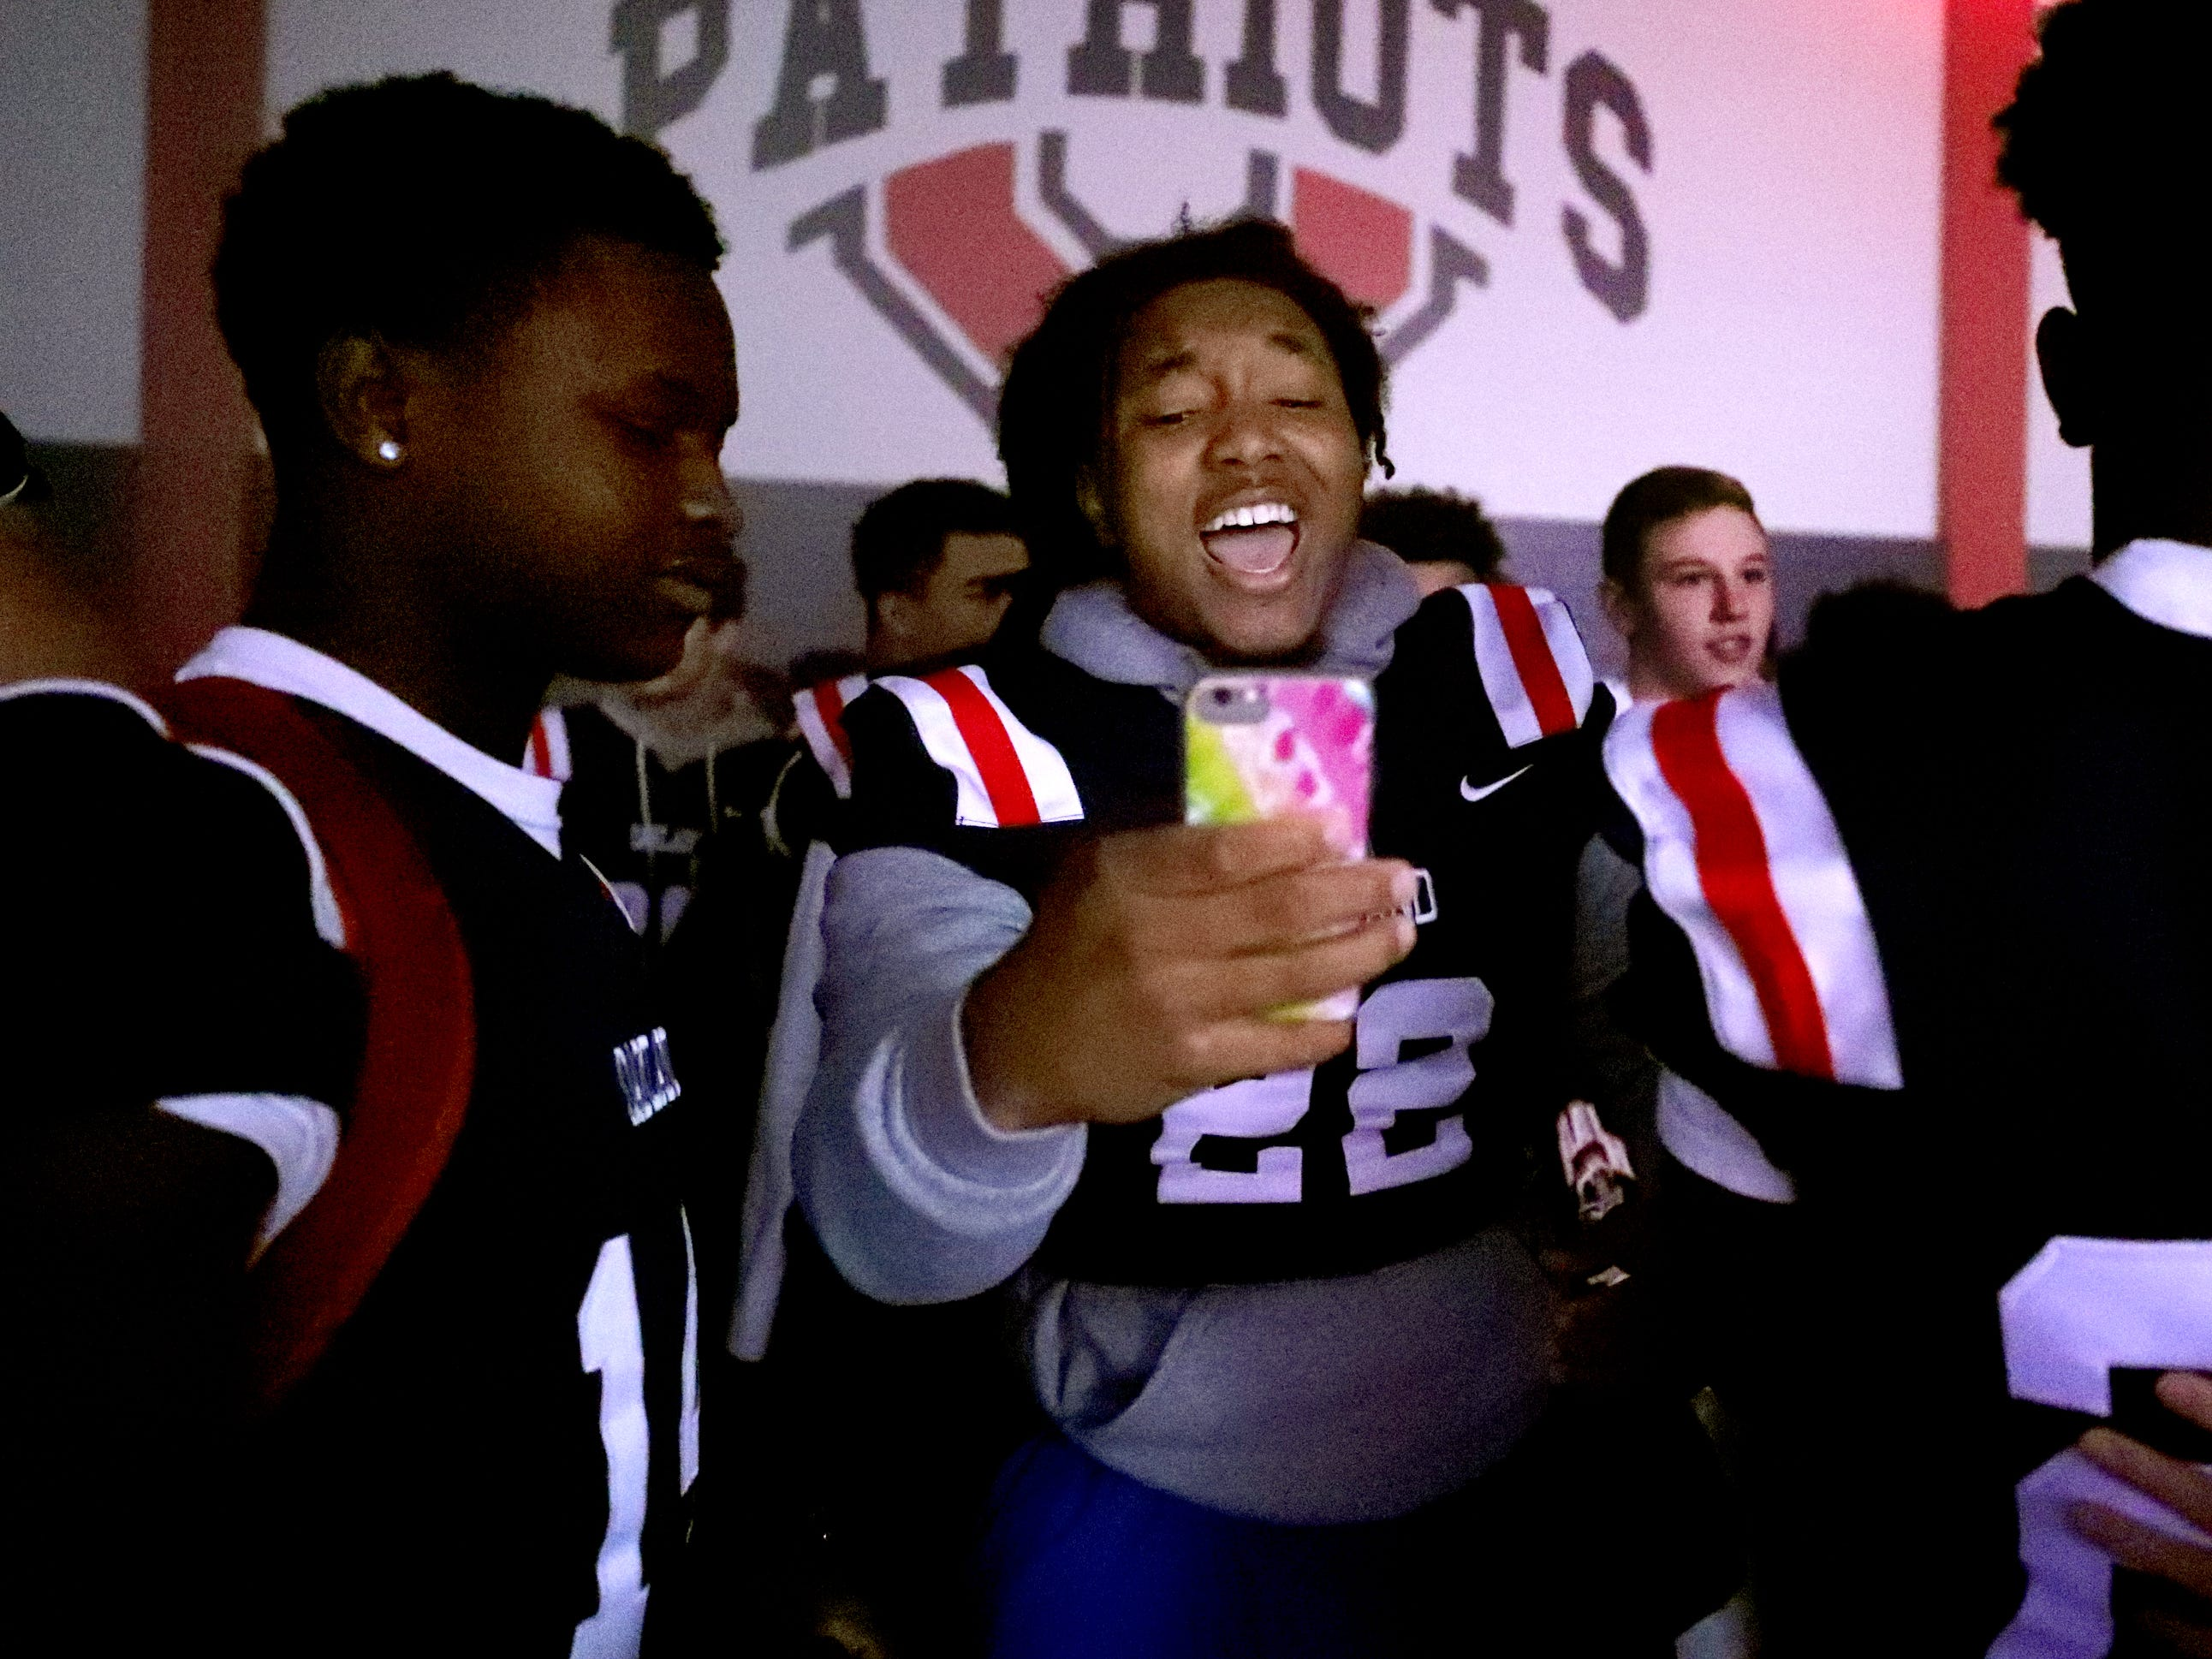 Oakland's Kameron Goodrich (14) and Oakland High School Ronnie Rankins (22) celebrate during a pep rally, on Monday, Dec. 3, 2018 at the school after the football team won the 6A State Championship BlueCross Bowl game against Westhaven on Thursday.